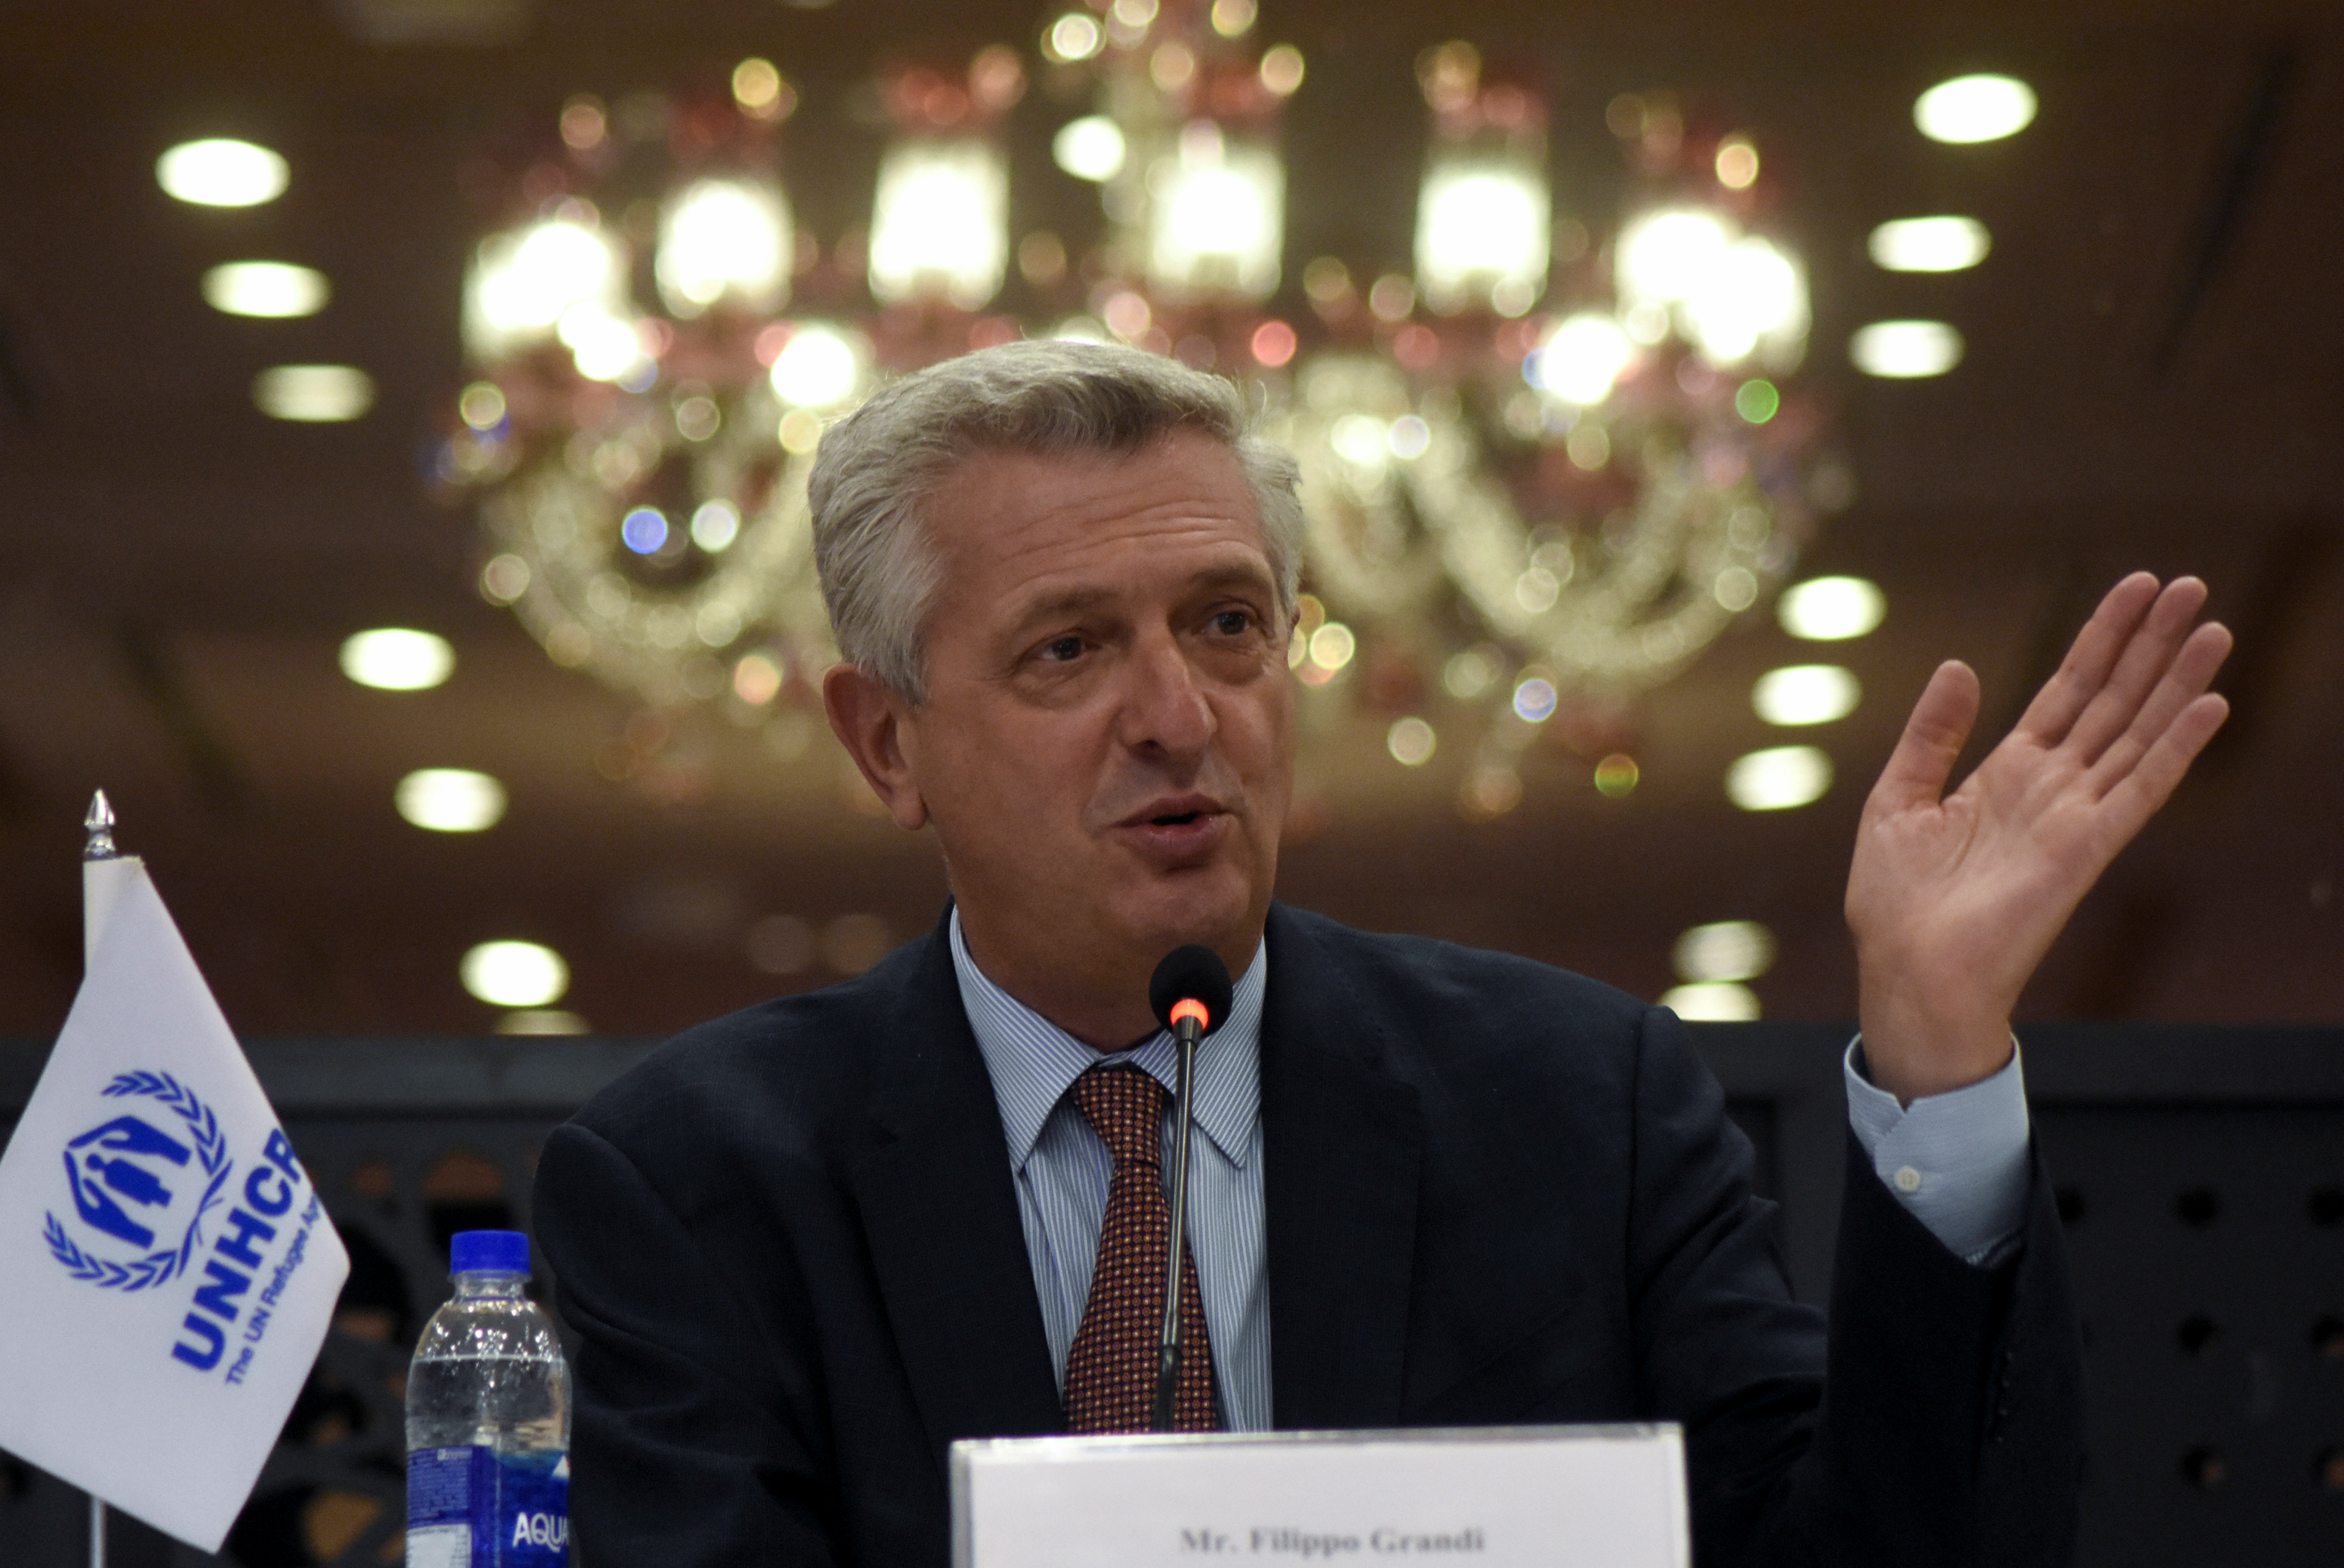 United Nations High Commissioner for Refugees (UNHCR) Filippo Grandi gestures as he speaks during a news conference in Islamabad, Pakistan September 17, 2021. REUTERS/Waseem Khan NO RESALES. NO ARCHIVES